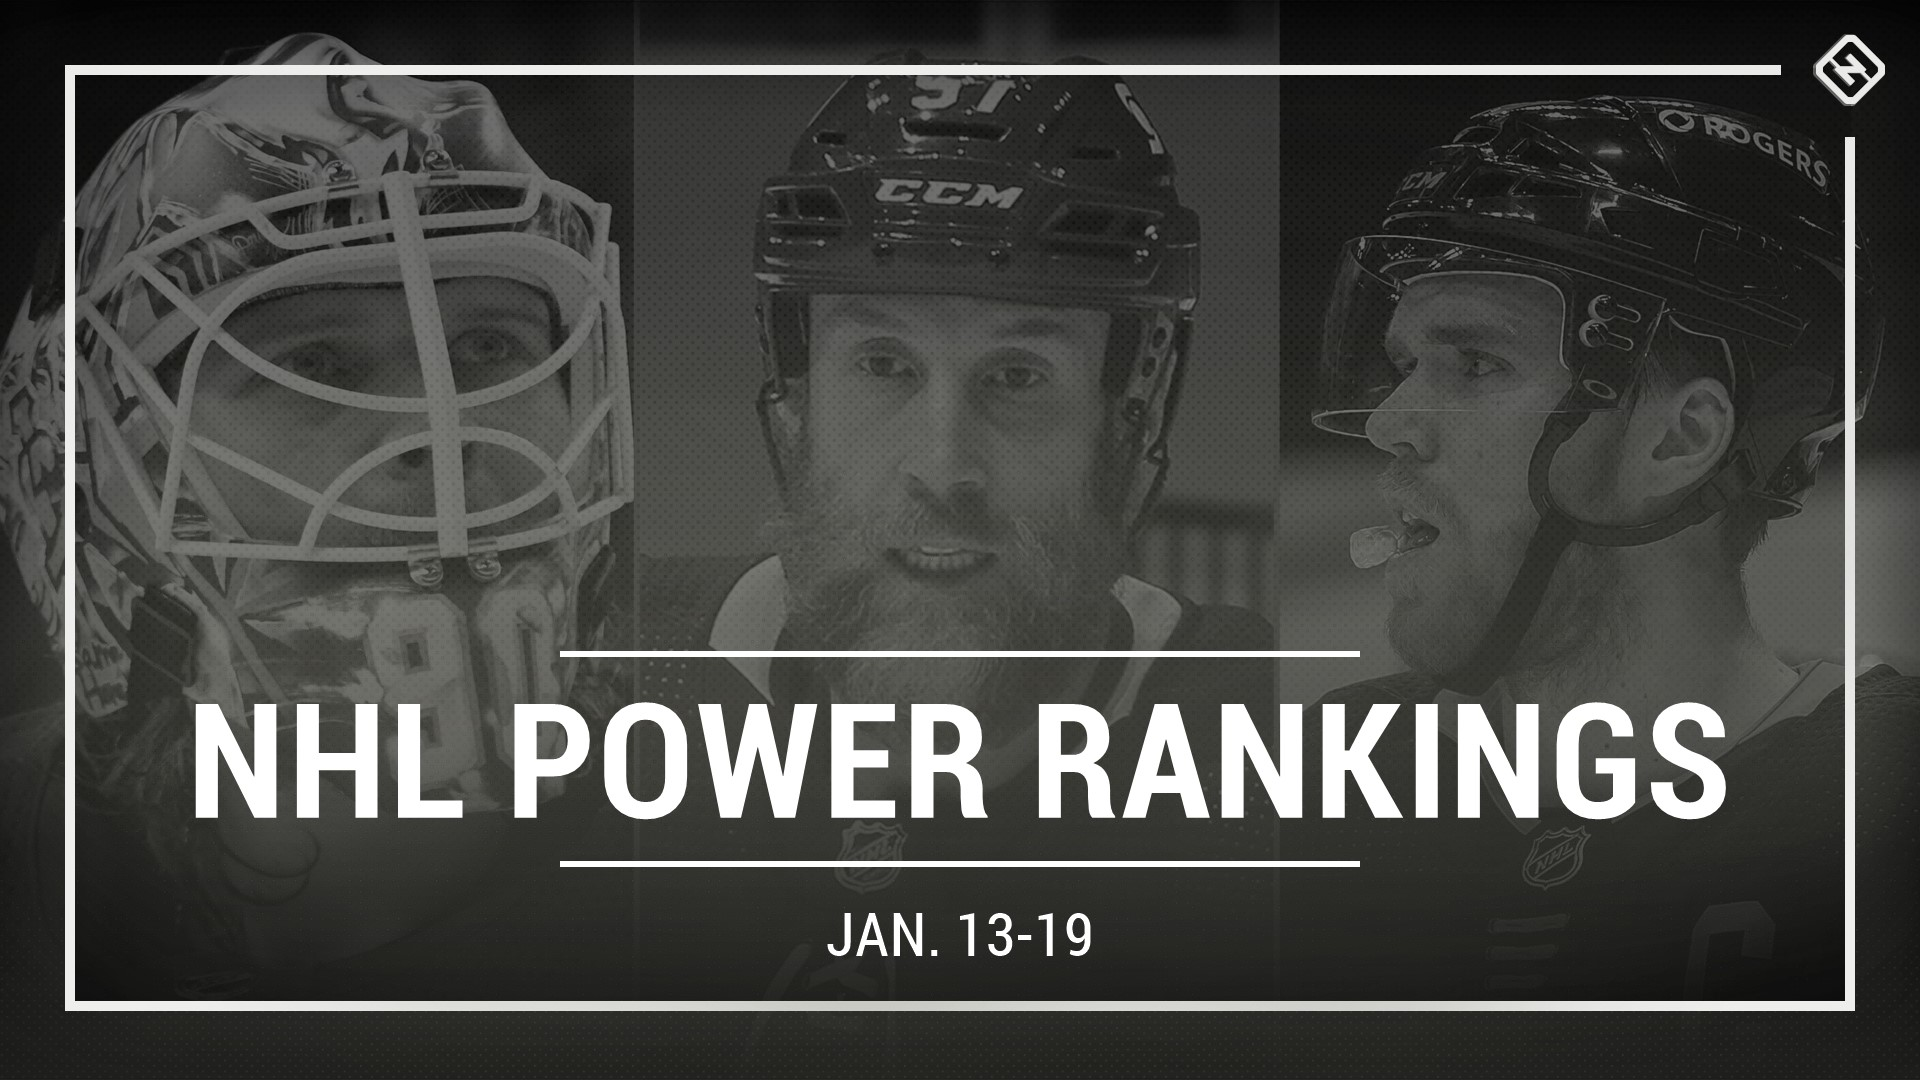 NHL power rankings 2021 Golden Knights Maple Leafs Canadiens start strong Oilers Blackhawks not so much